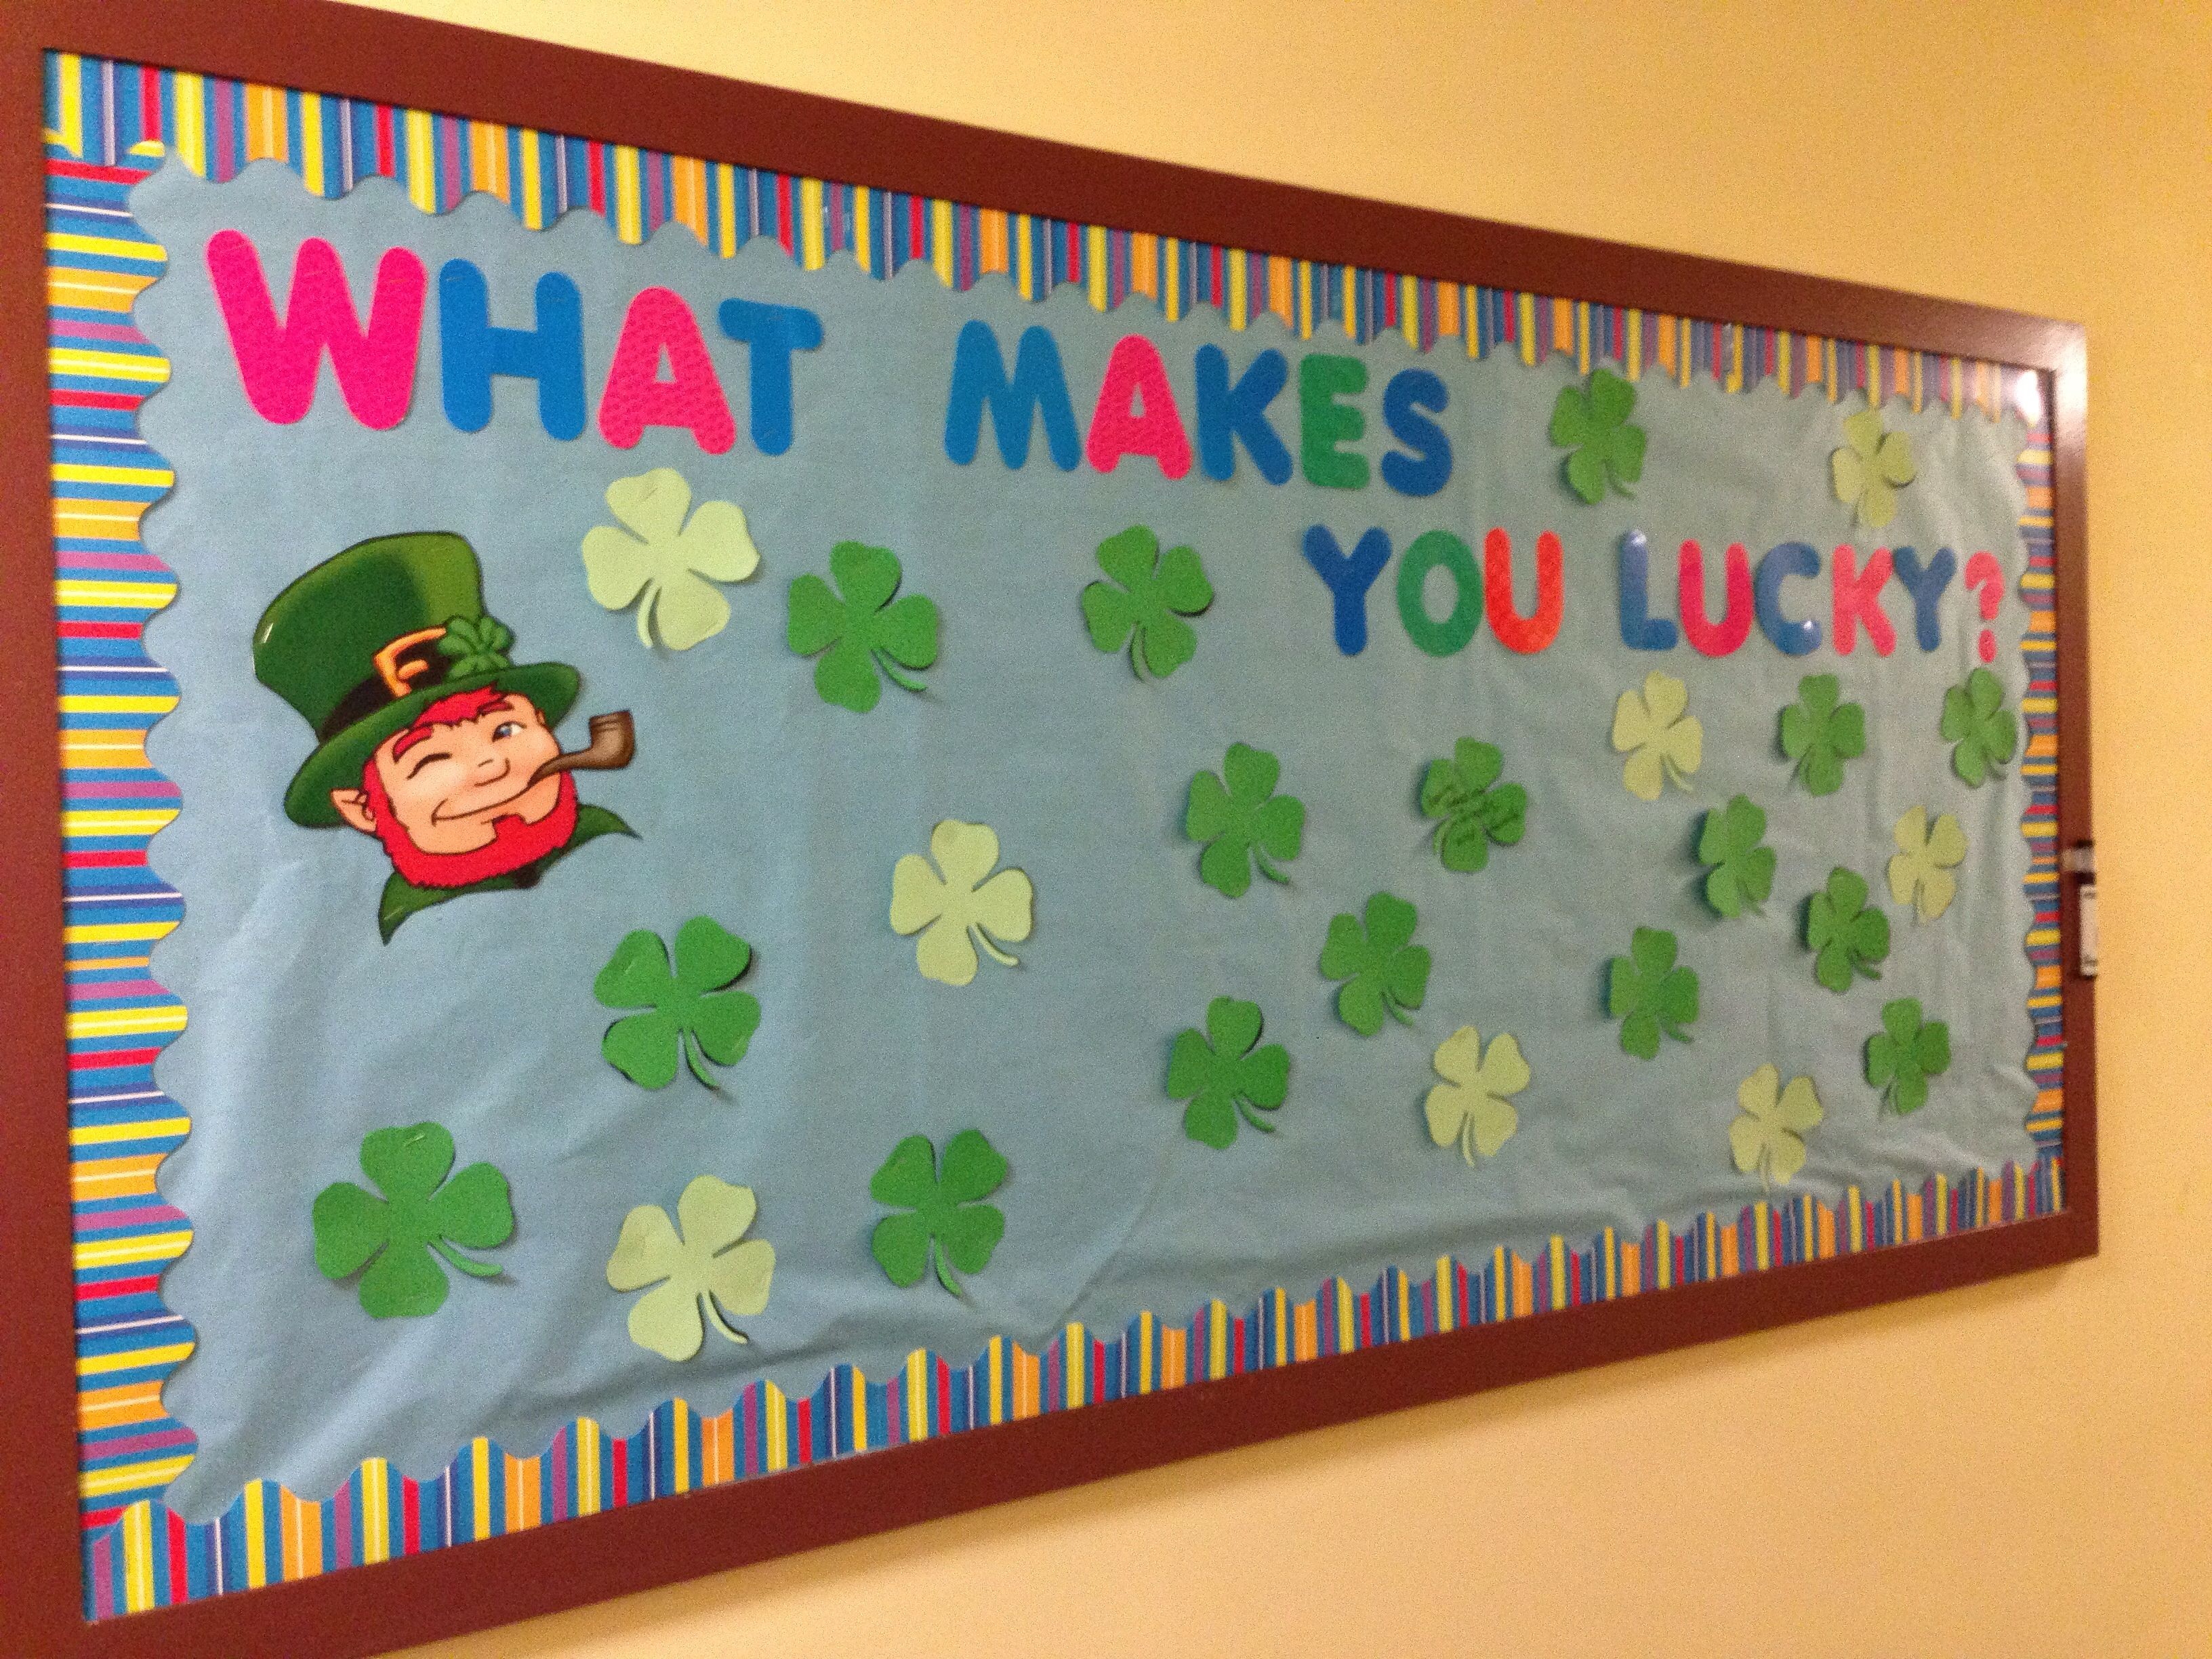 Bulletin Board Ra Things Pinterest March And Cute766